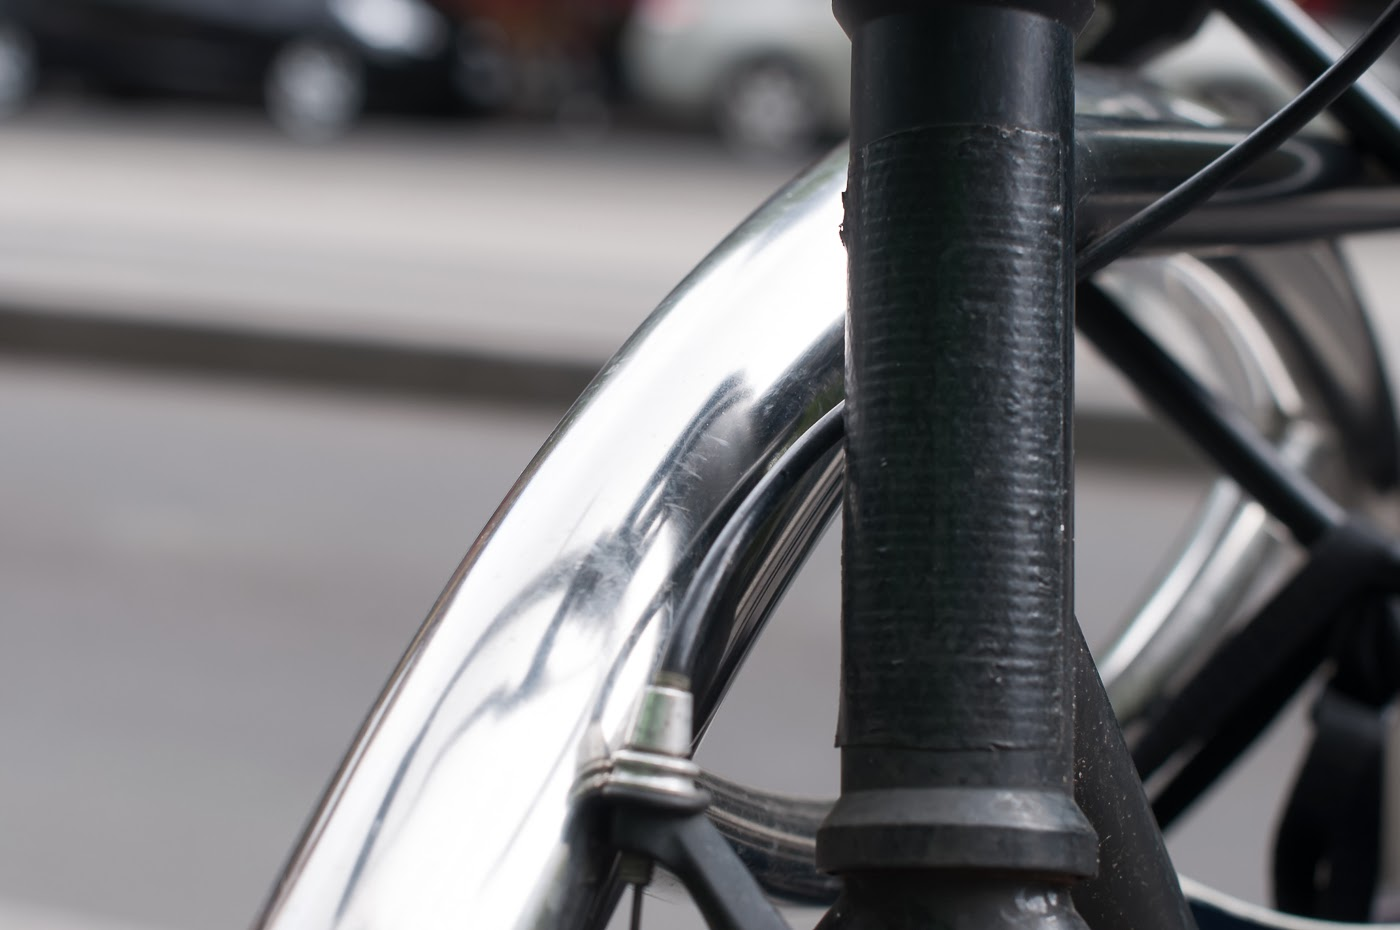 single speed, bike, bicycle, tim macauley, the biketorialist, melbourne, road bike,  bourke st, custom, stealth, black, track frame, swanston St, headtube, gaffer tape